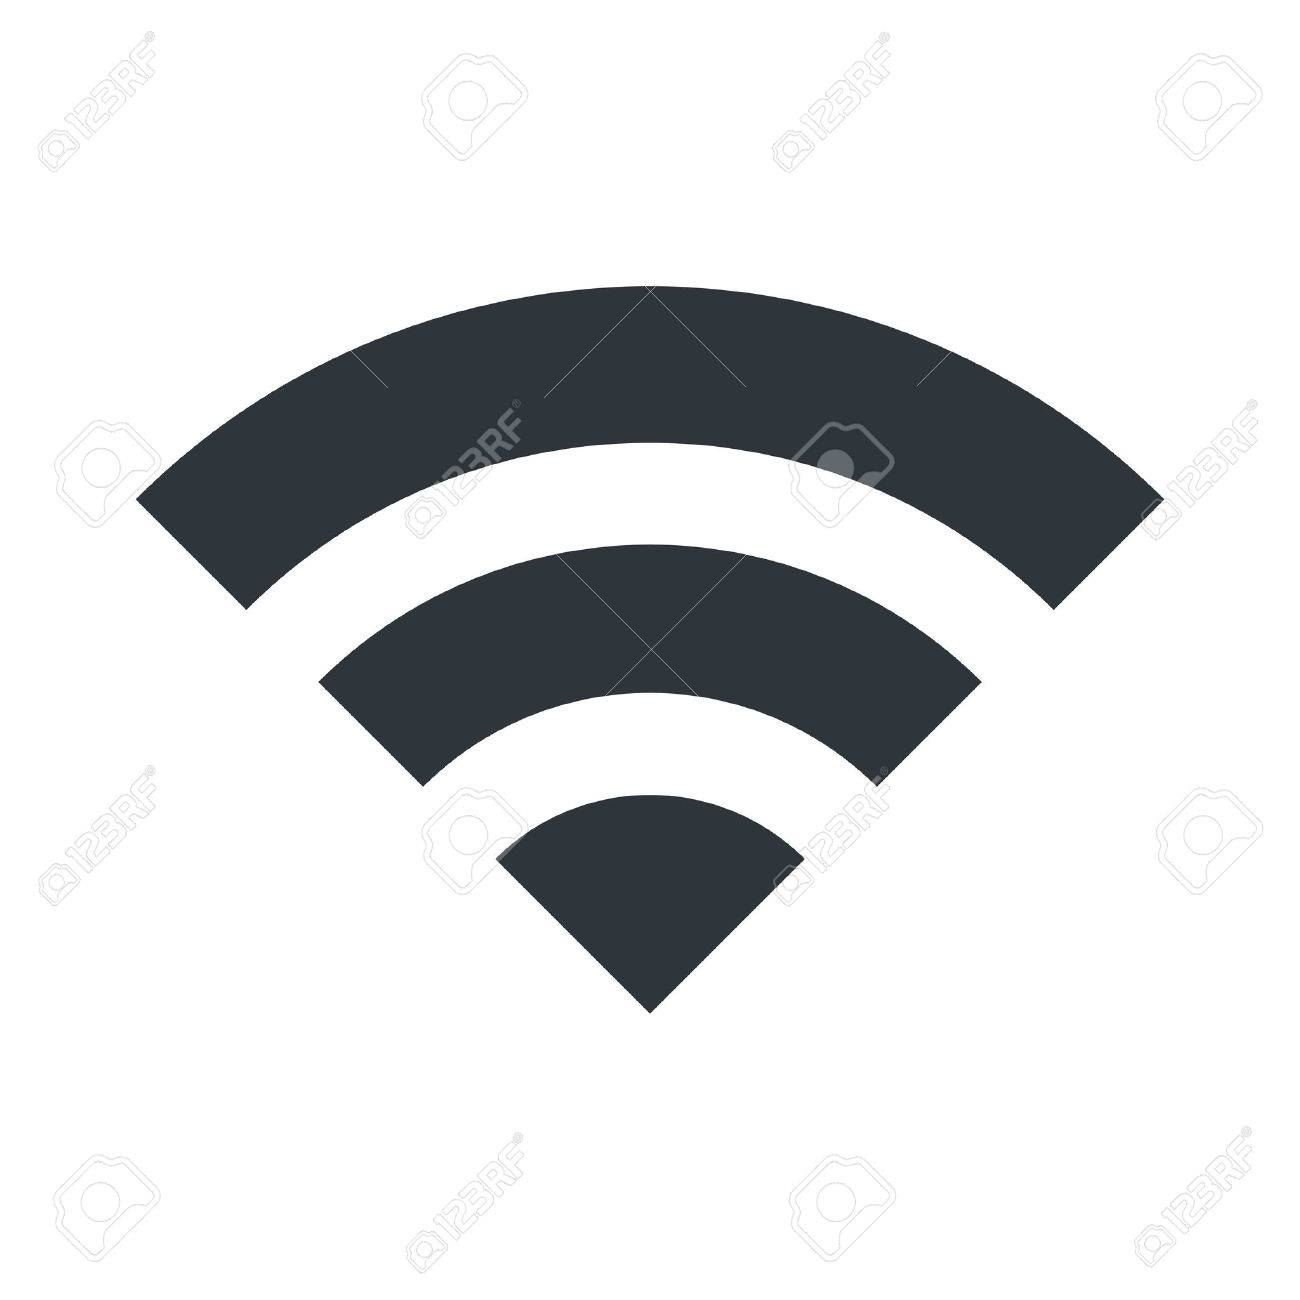 WIFI icon for signal connection symbol. Vector Illustration design. - 53746725